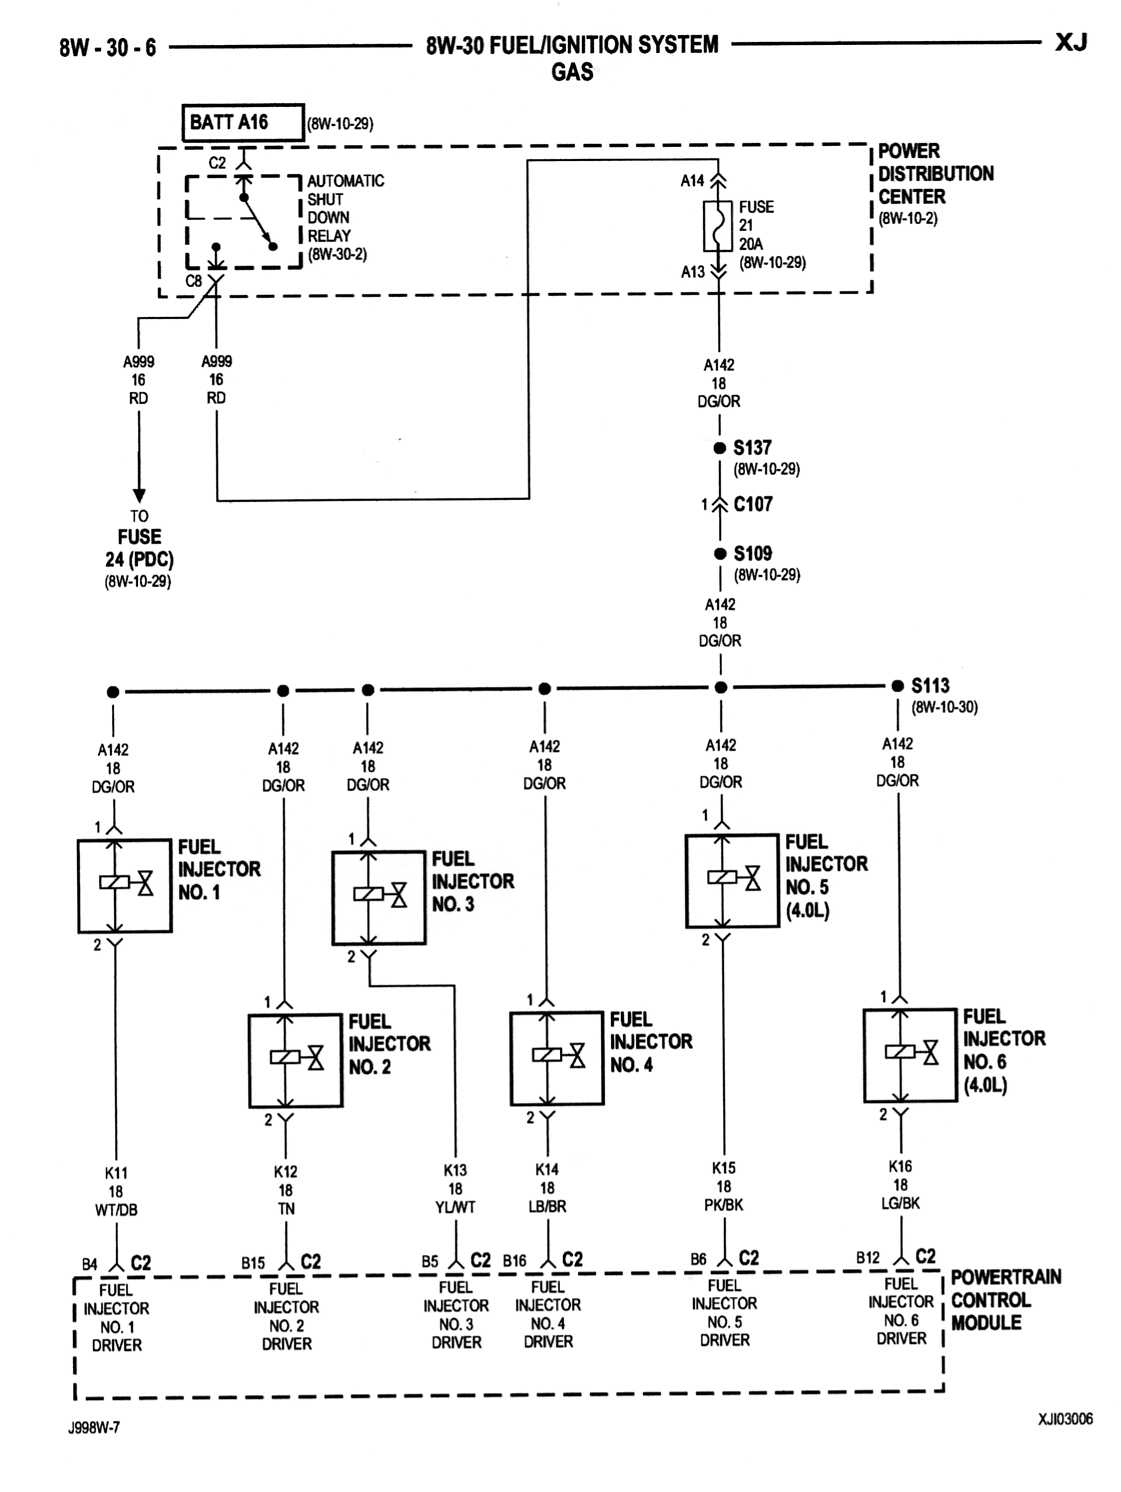 hight resolution of 98 cherokee ignition diagram wiring diagram 98 jeep 4 0 wiring diagram